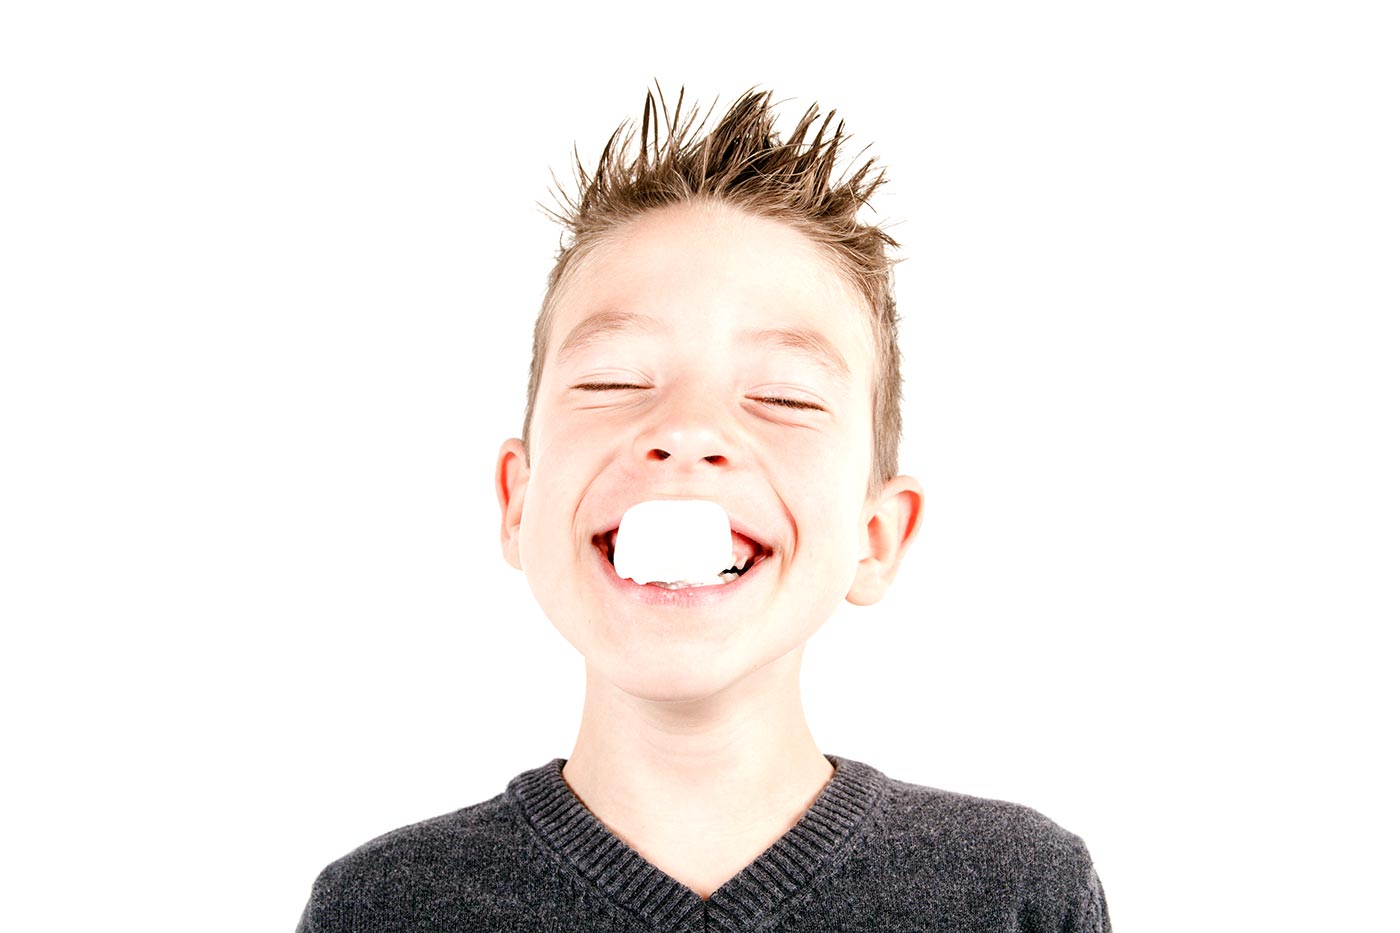 Boy eating a marshmallow